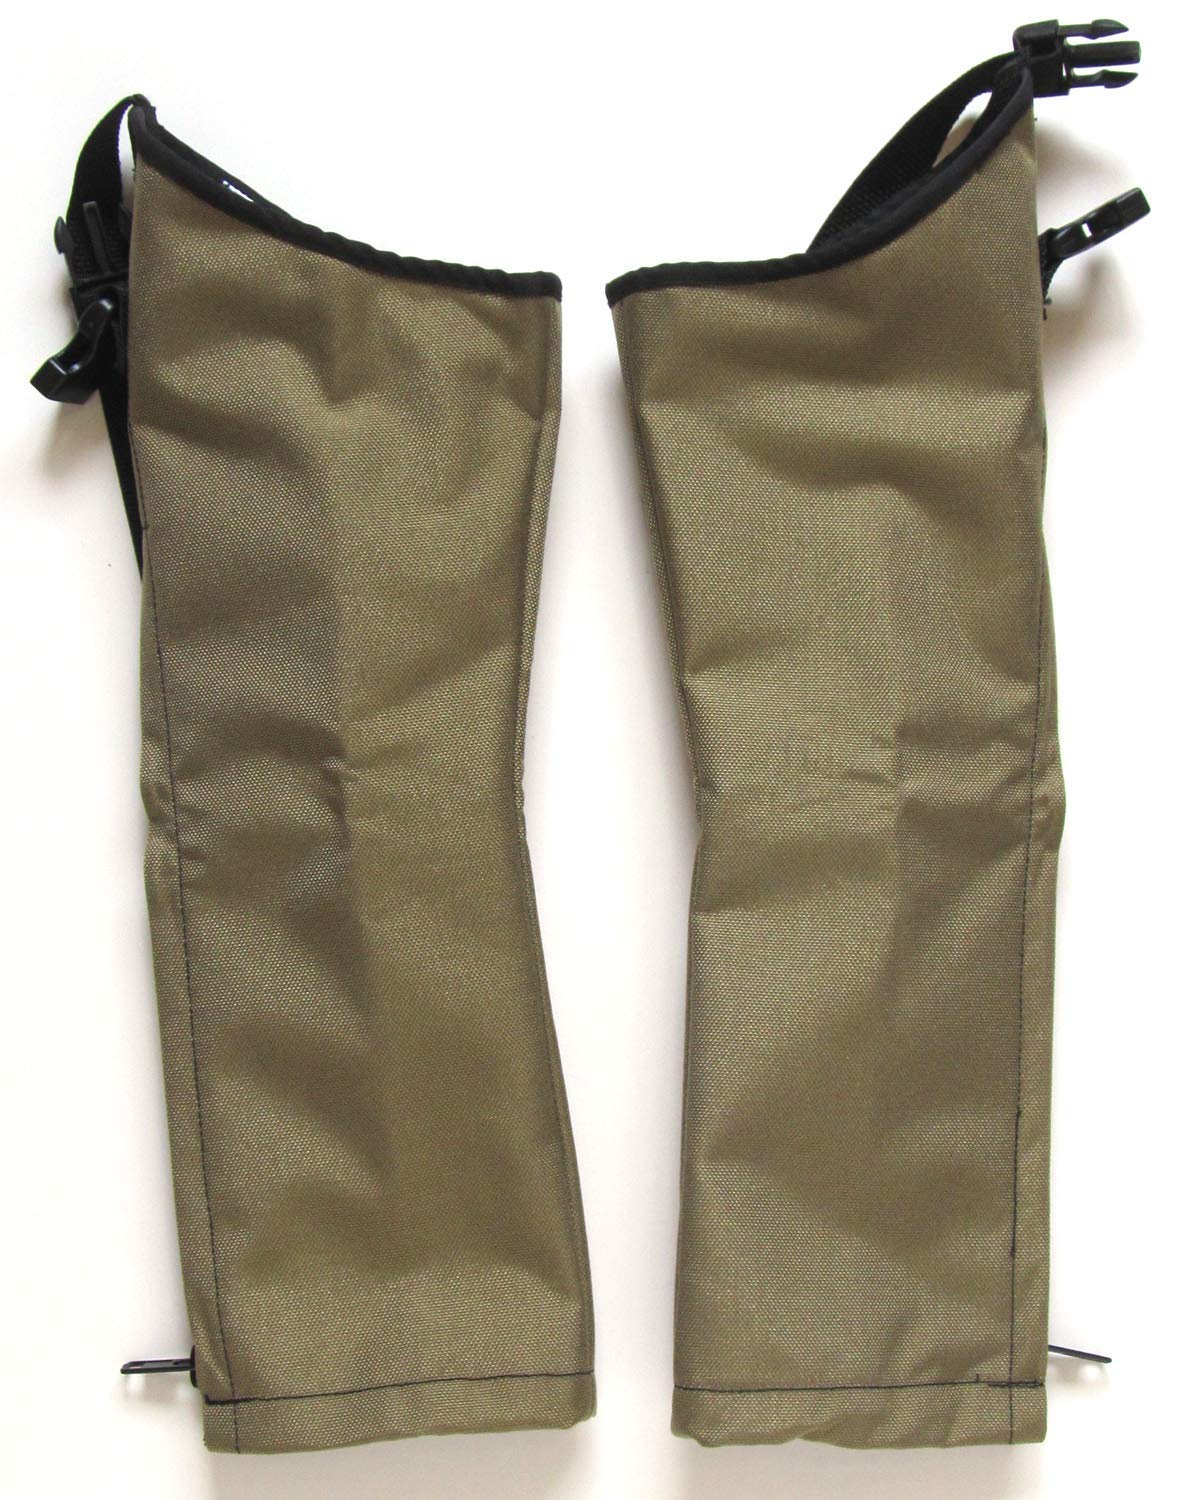 Snake Chaps for Kids - Youth Size Snake Chaps - Snake Bite Full Protection Chaps for Children - Crackshot (Khaki Tan, Large Stocky) by Crack Shot